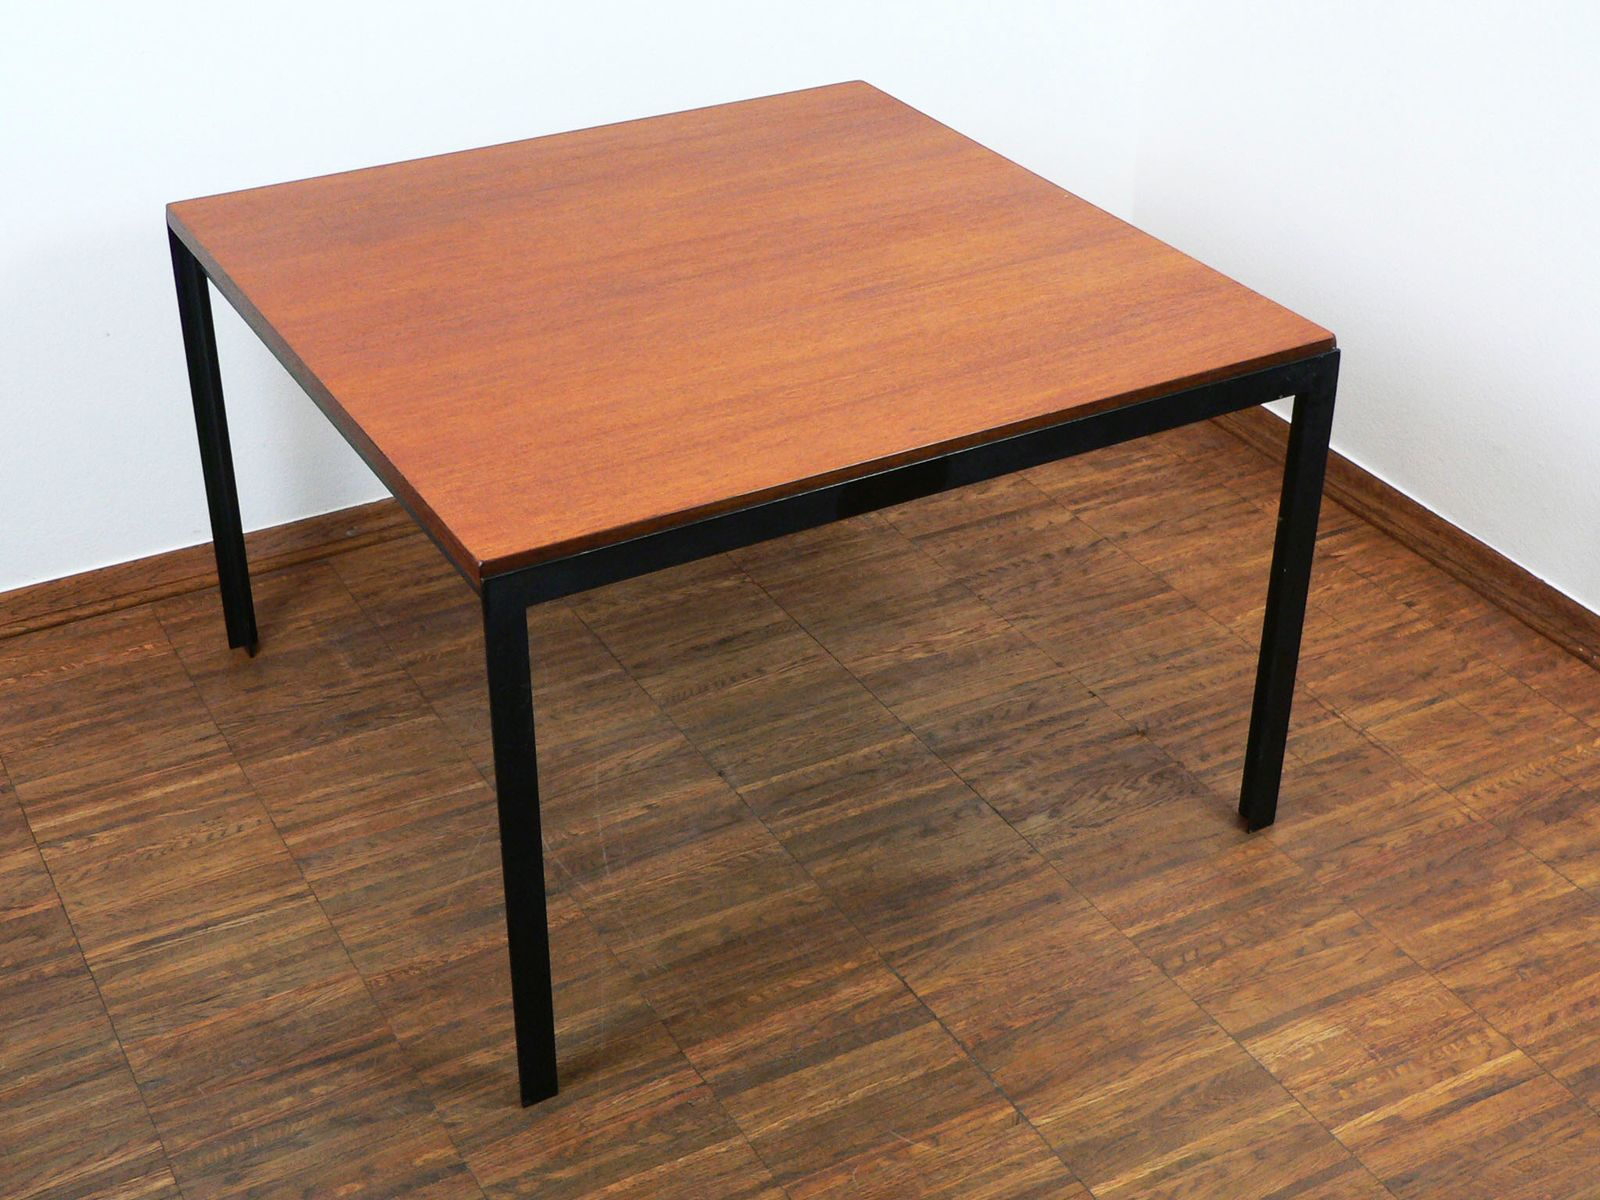 TAngle Coffee Table by Florence Knoll for Knoll 1950s for sale